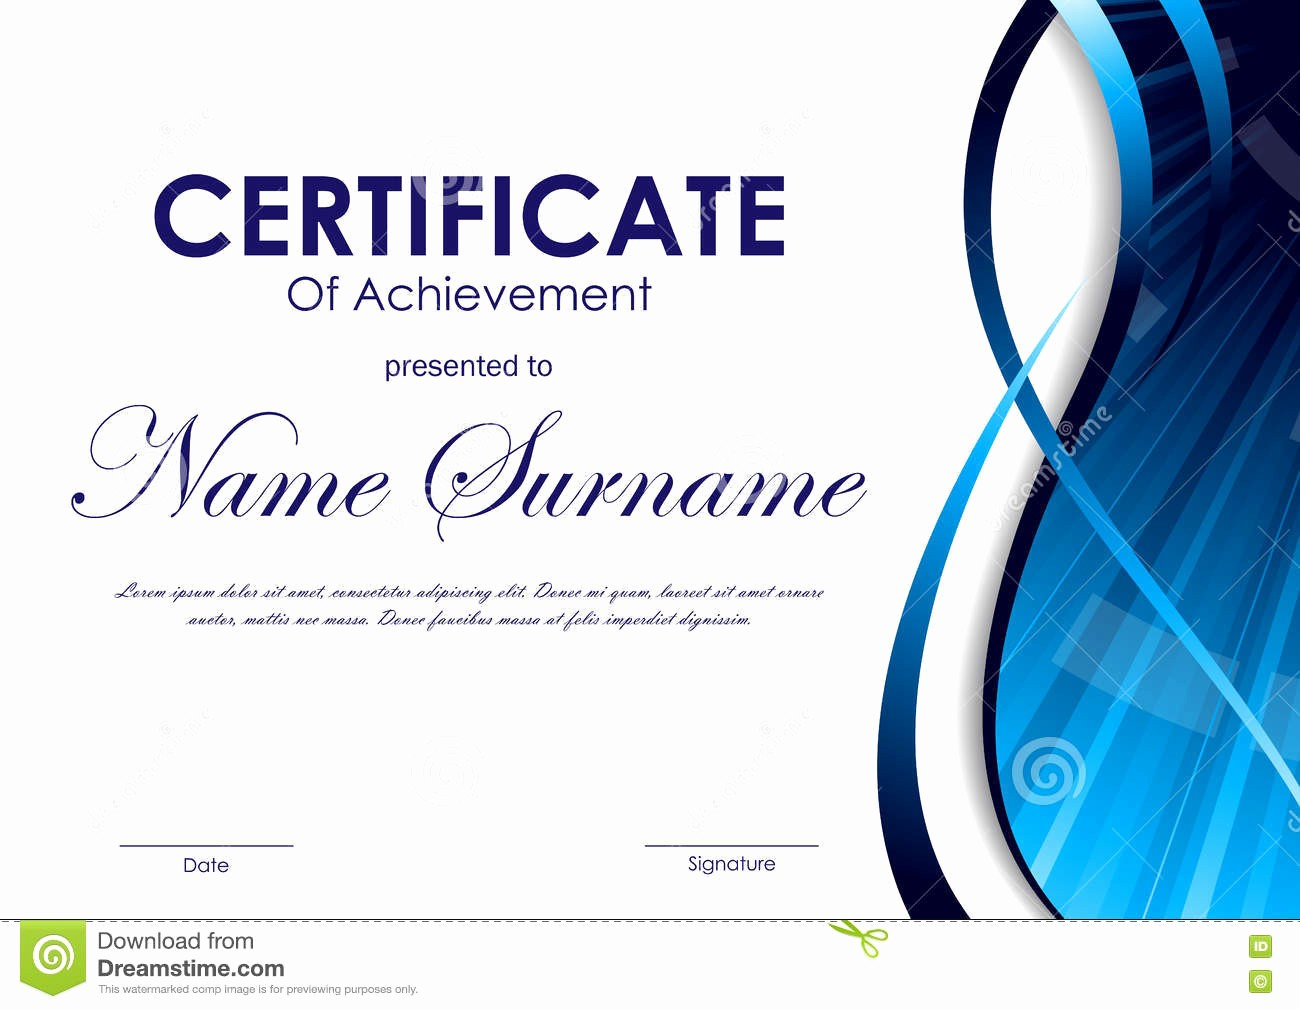 Certificate Background Design Free Download Best Of Certificate Achievement Template Stock Vector Image